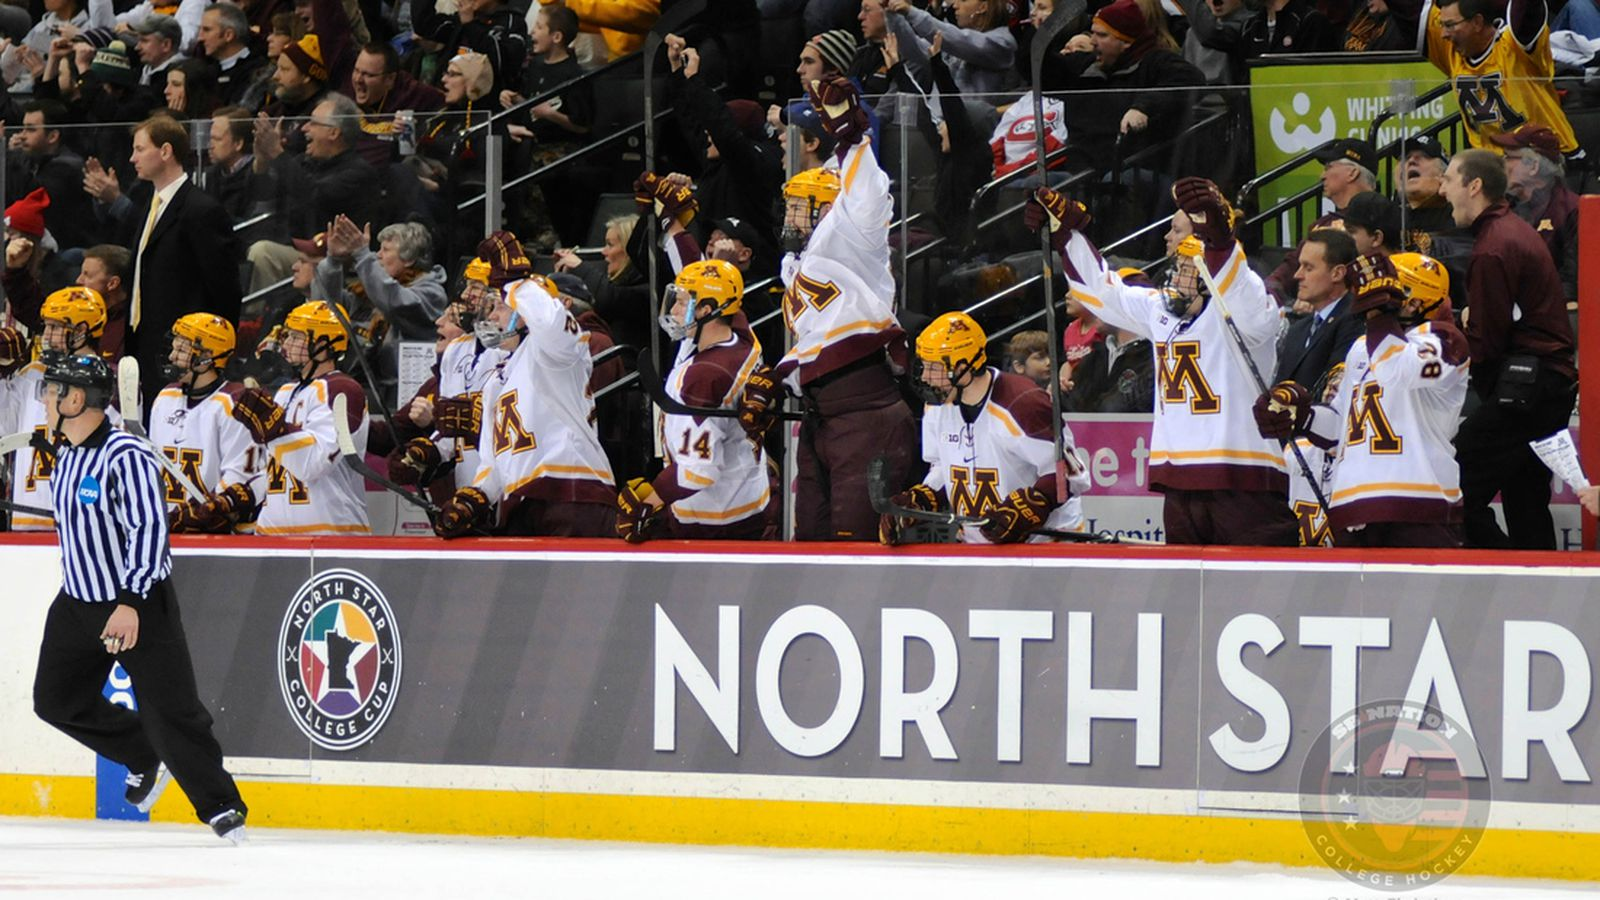 North Star College Cup: Minnesota vs St. Cloud State ...